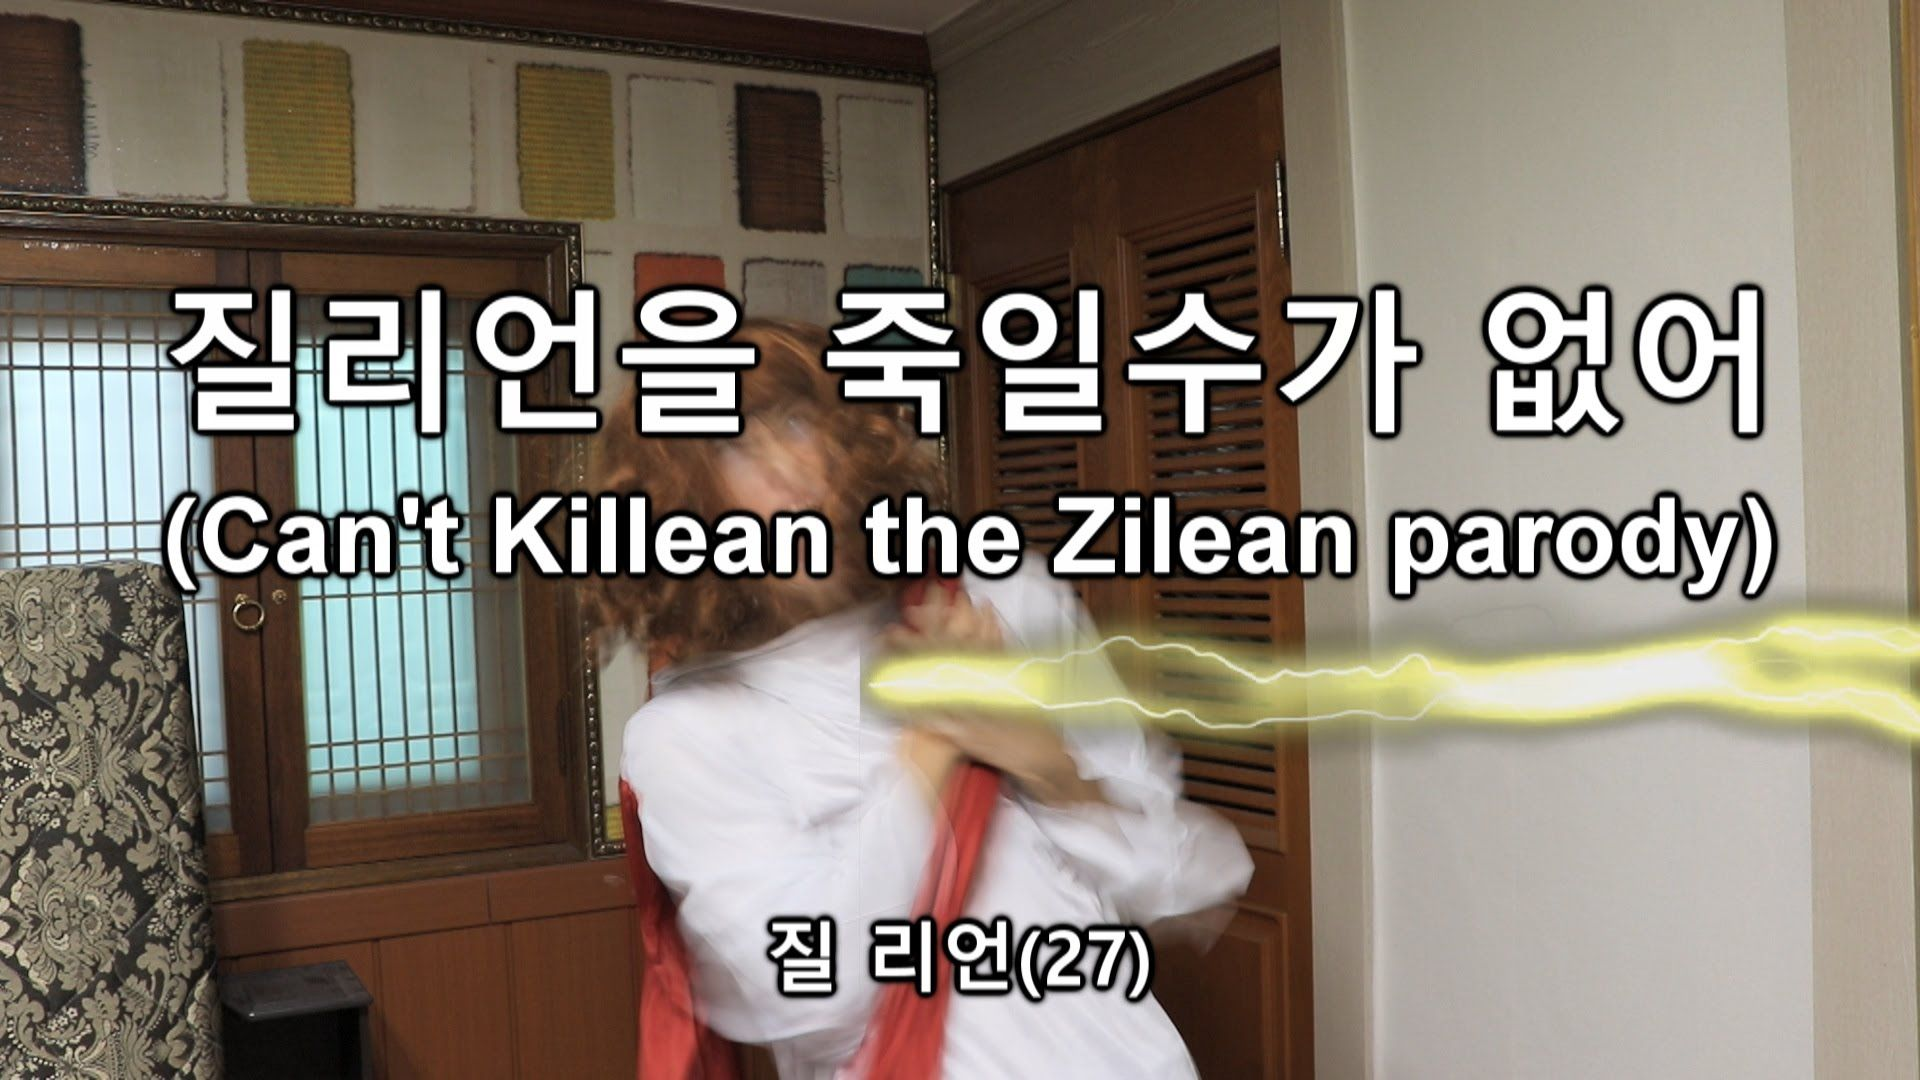 Can't Killean the Zilean parody 질리언을 죽일수 없어 실사판 [GoToe PARODY] https://www.youtube.com/watch?v=YvFZHeHKikM #games #LeagueOfLegends #esports #lol #riot #Worlds #gaming